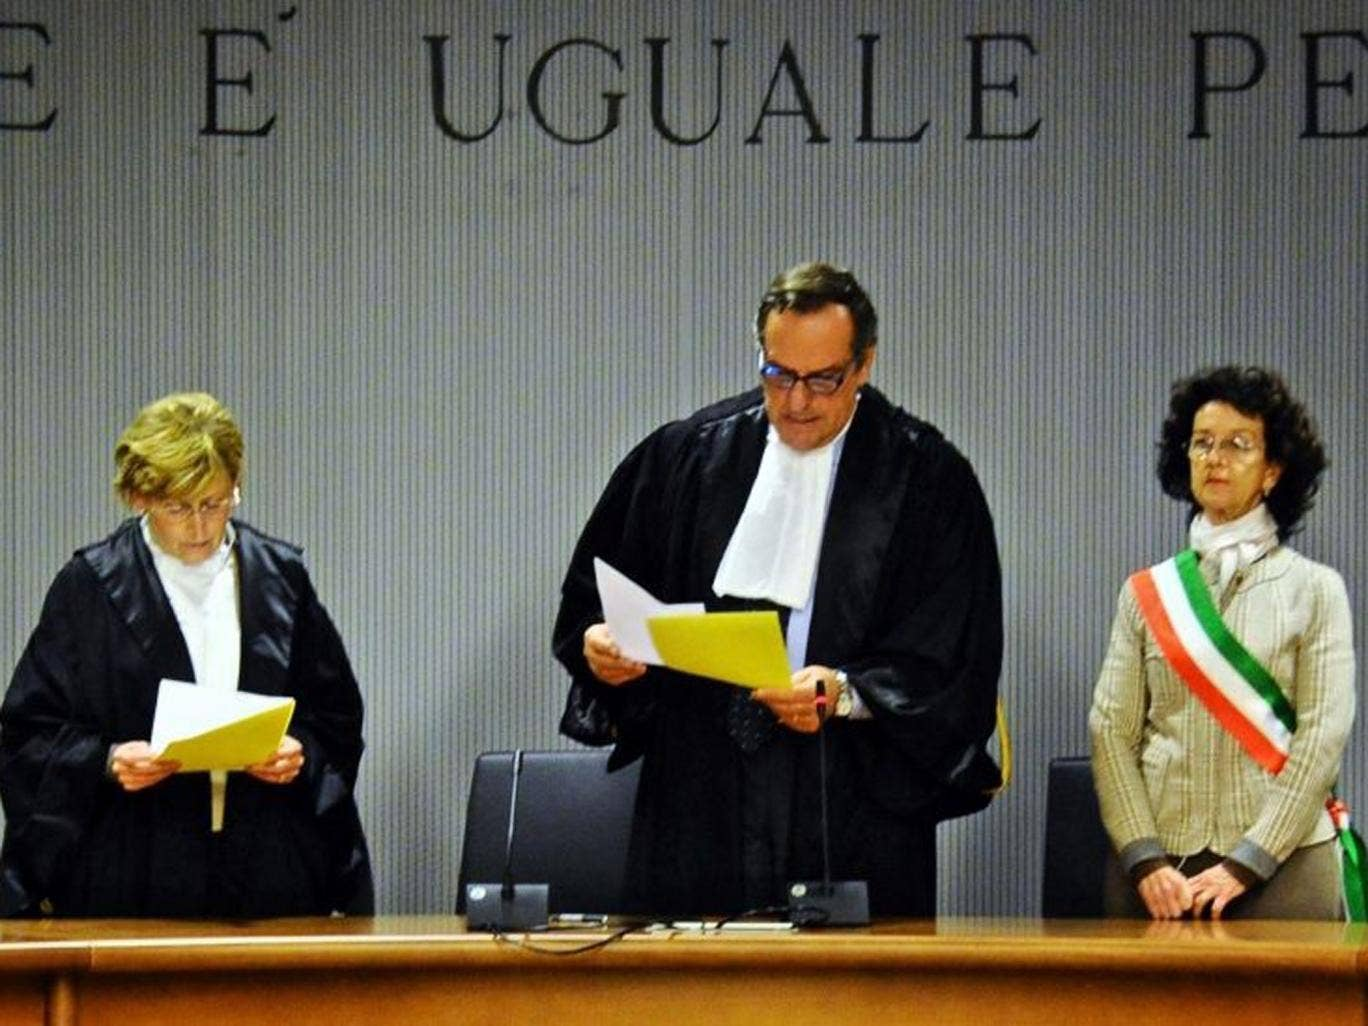 The presiding judge Alessandro Nencini (C) reads the judgment of the Court of Appeals for the verdict of the Amanda Knox and Raffaele Sollecito retrial, Florence, Italy